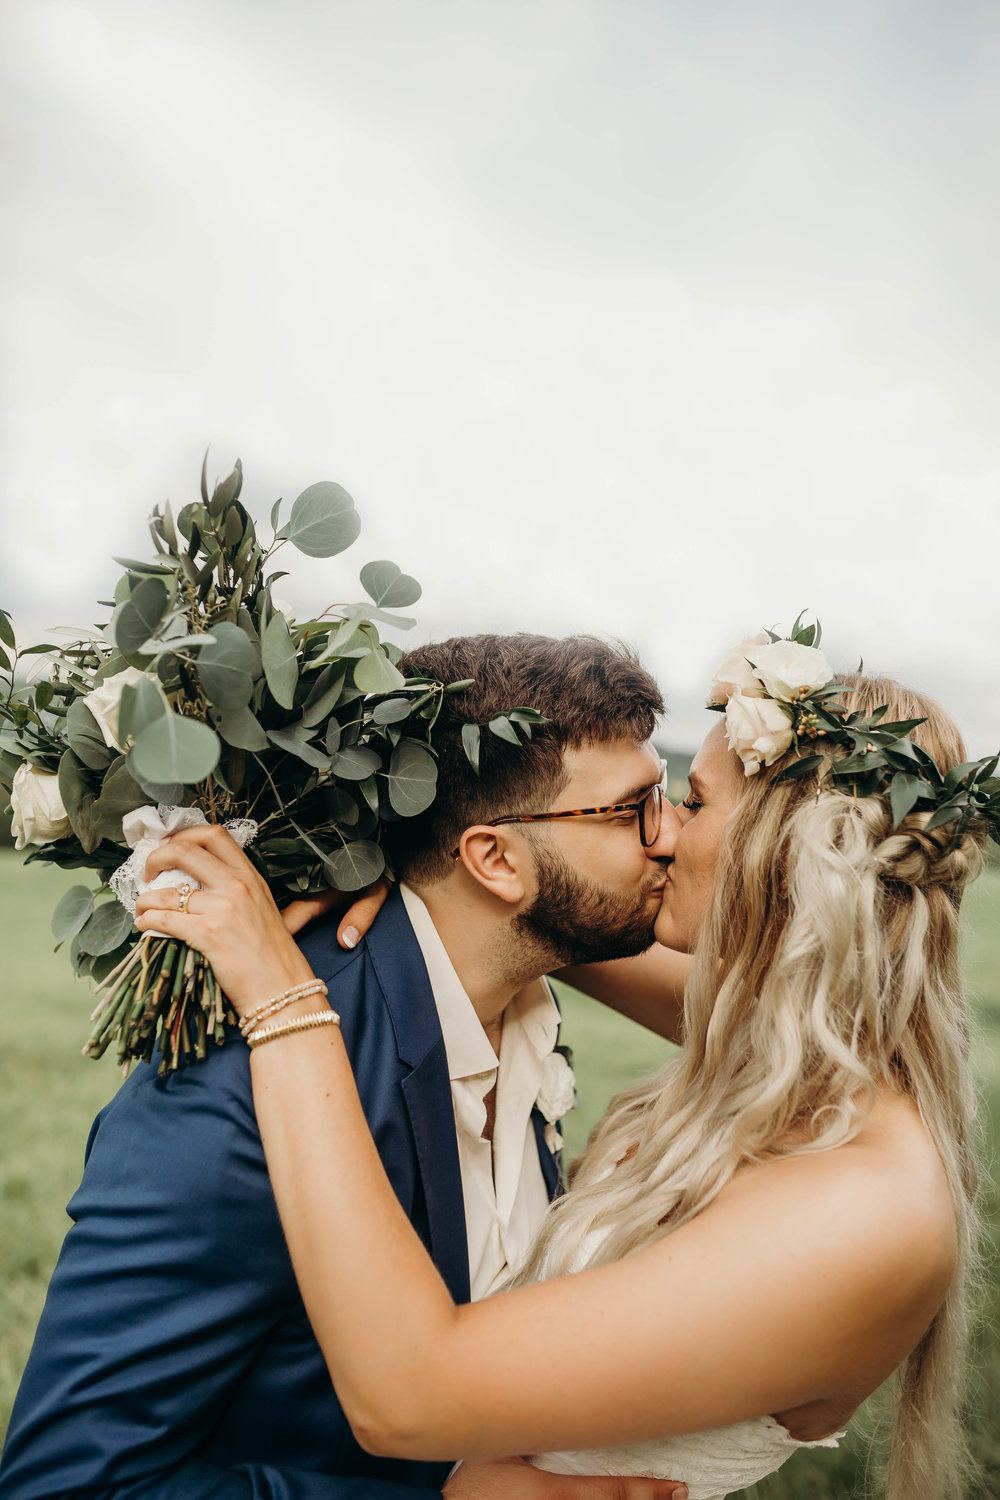 Spring Wedding - Natural & Fun